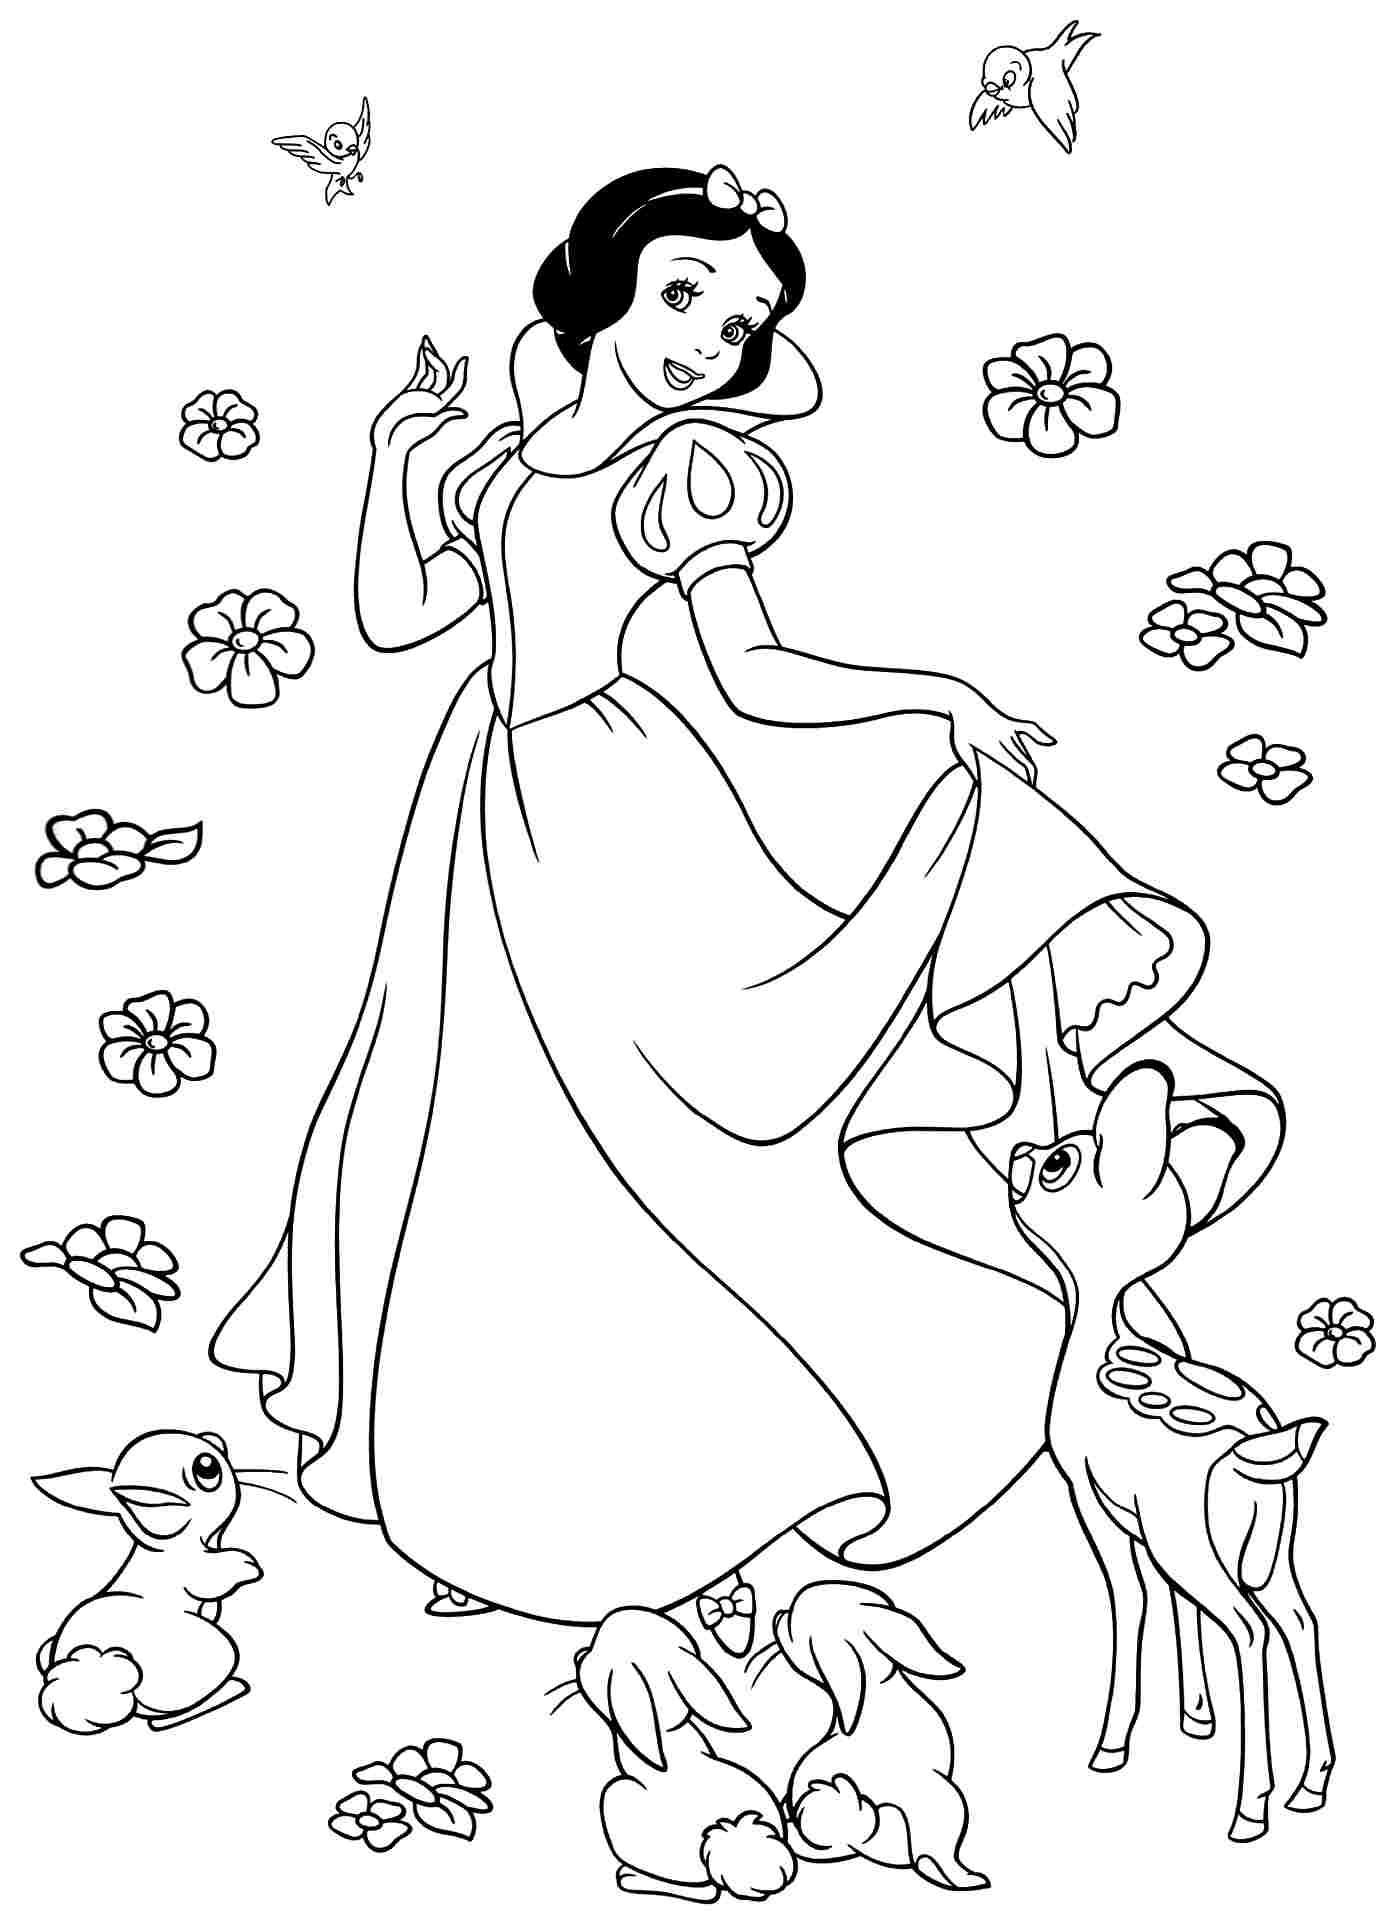 Walt disney coloring pages princess snow white the prince